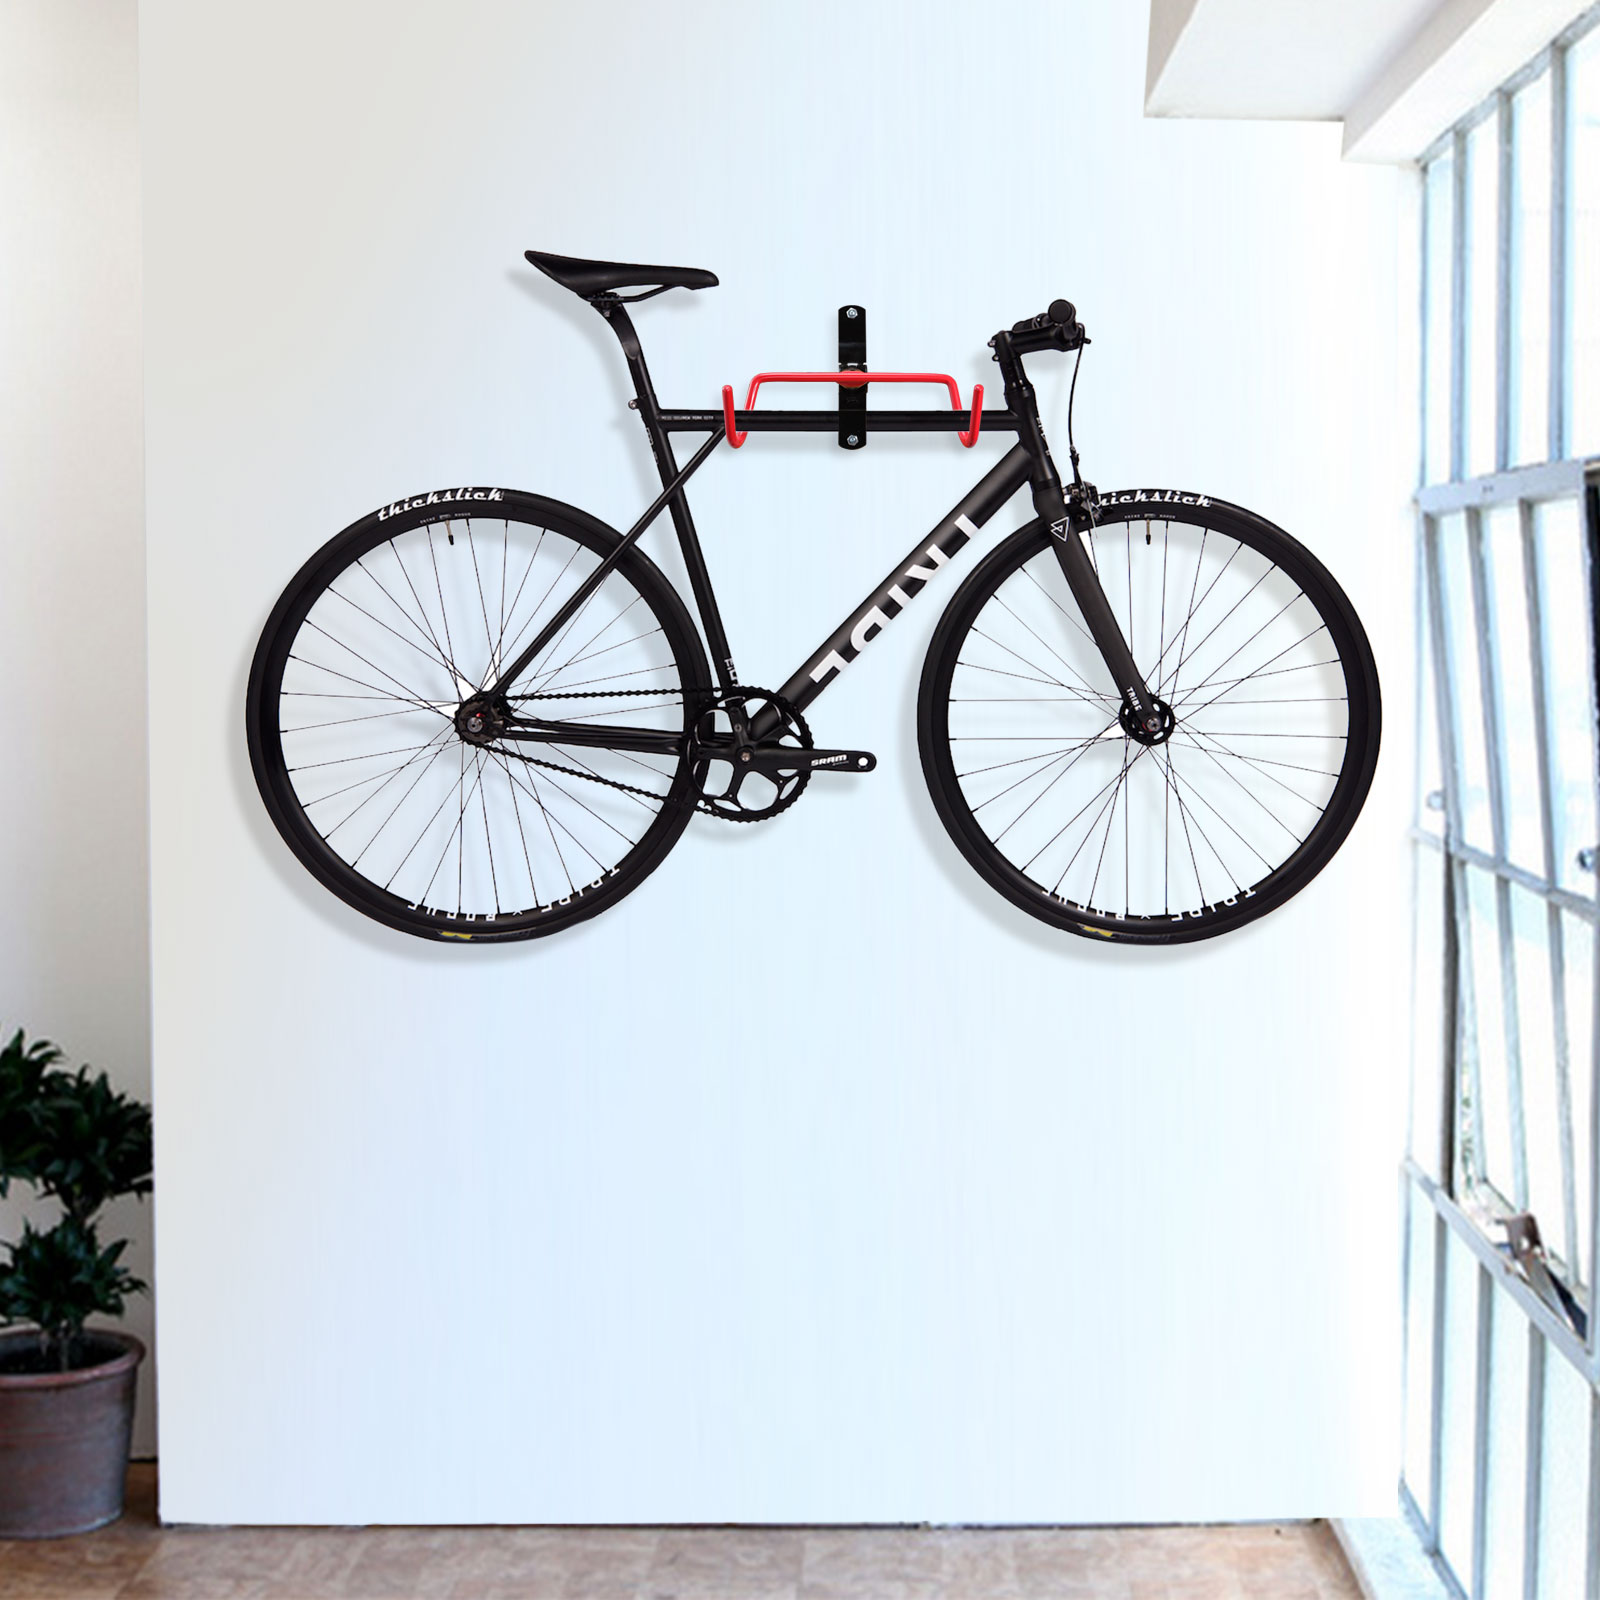 2pcs bike wall mount hanger garage storage hook holder rack cycling bicycle ebay. Black Bedroom Furniture Sets. Home Design Ideas